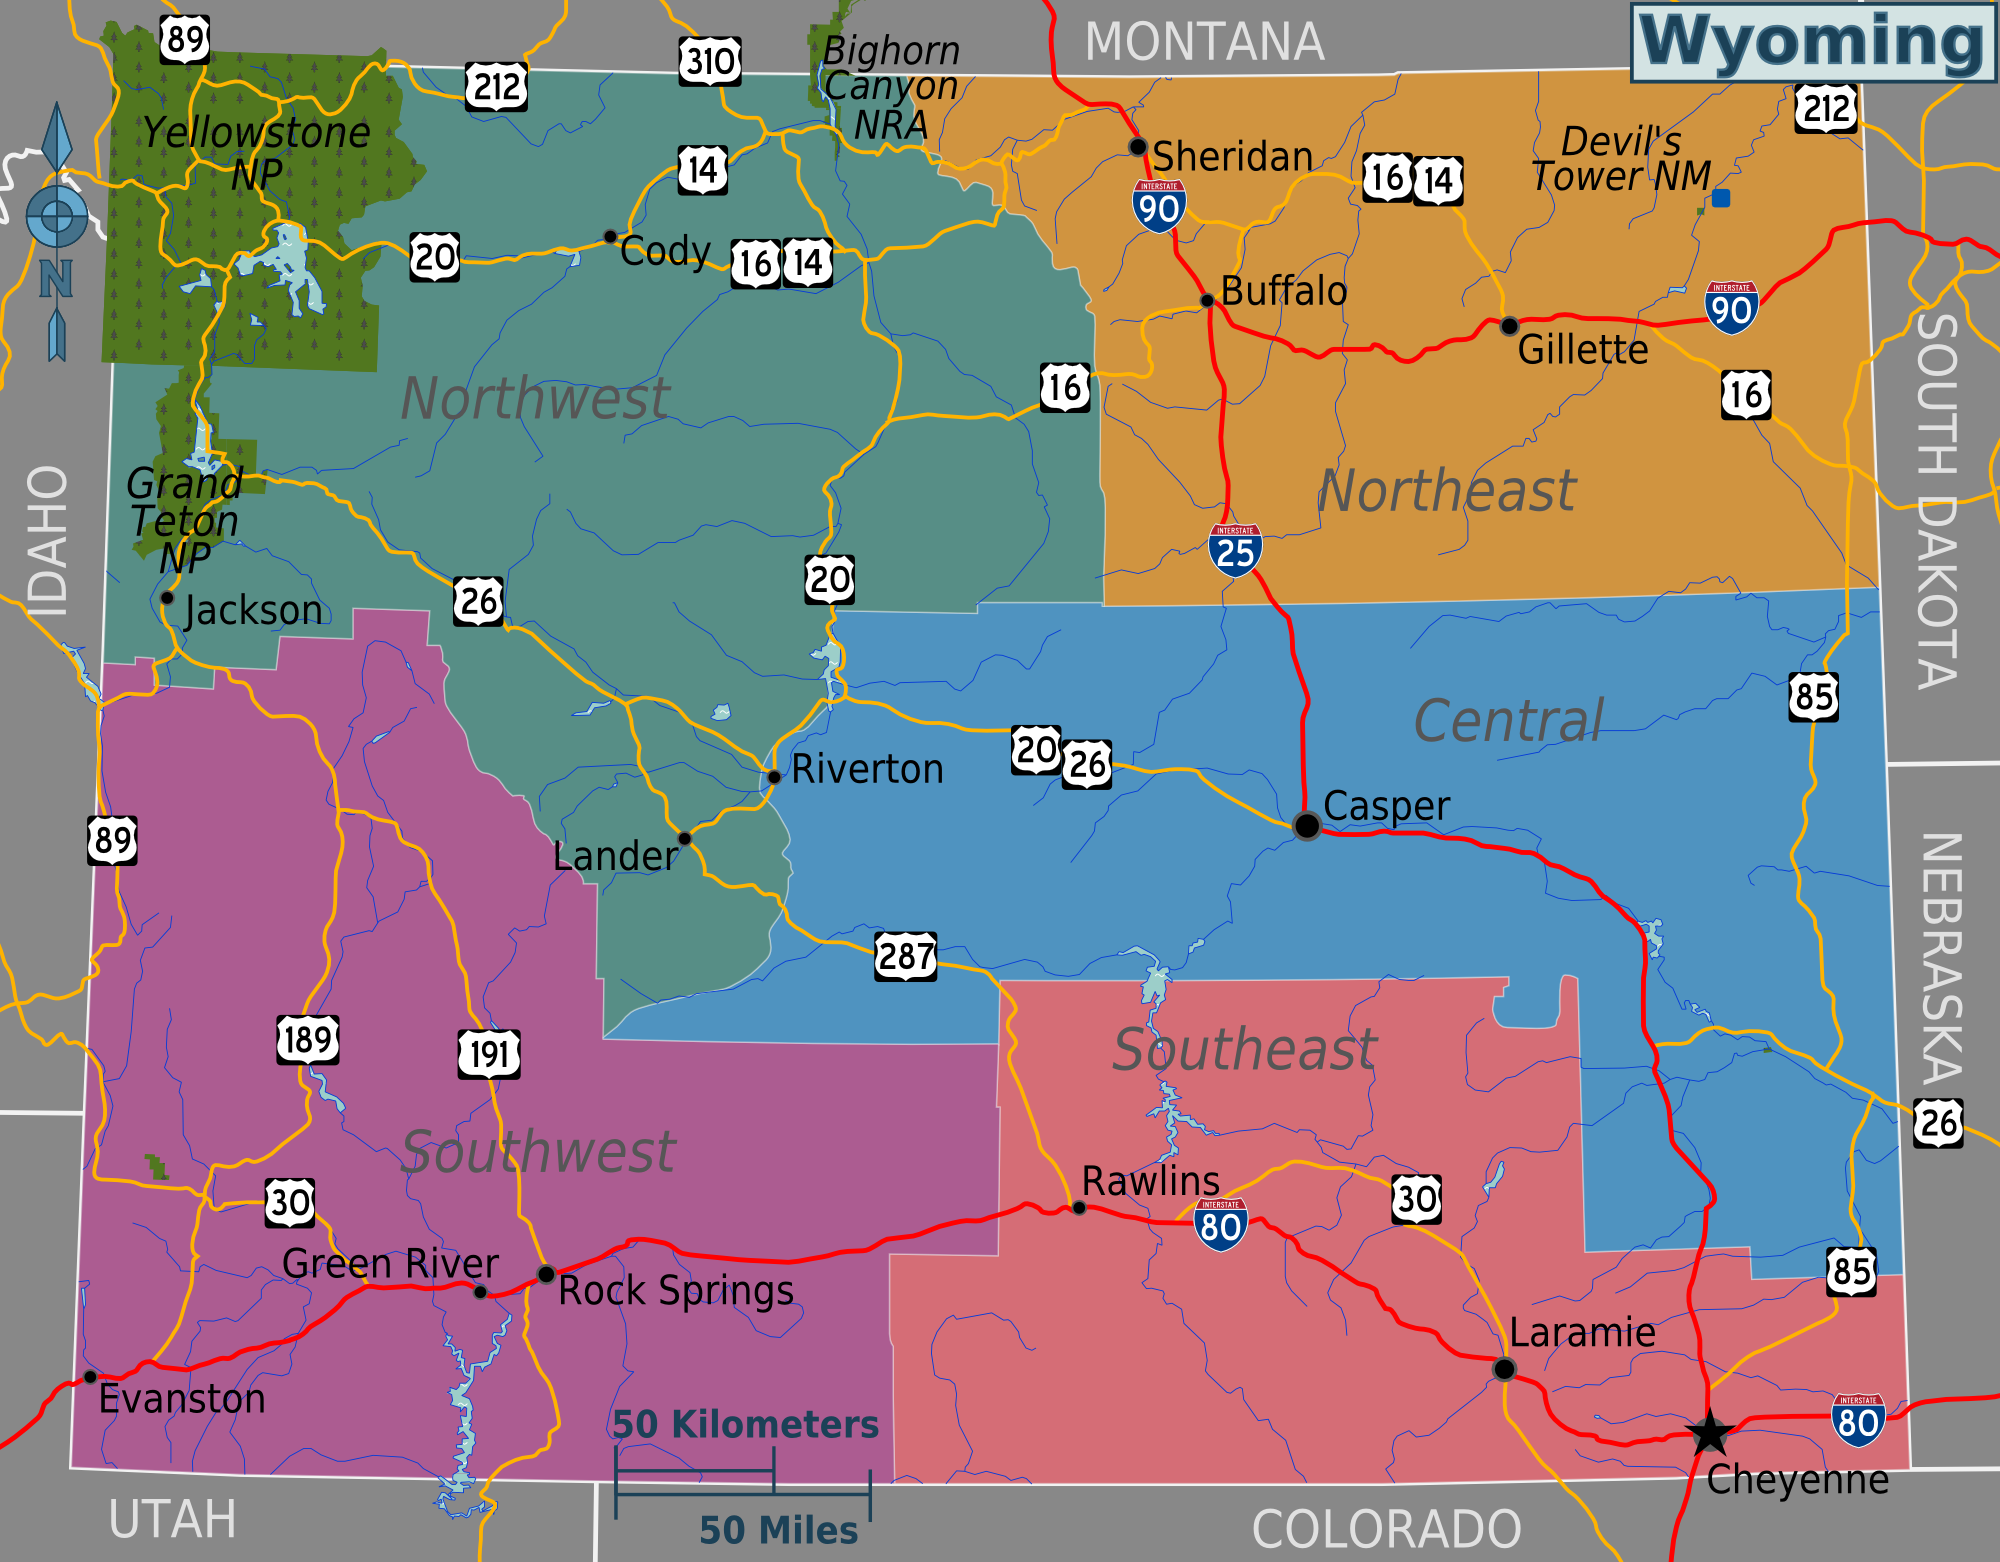 colorodo map with File Wyoming Regions Map on File wyoming regions map moreover Hudson further Dover further 4707334532 moreover 4101989064.